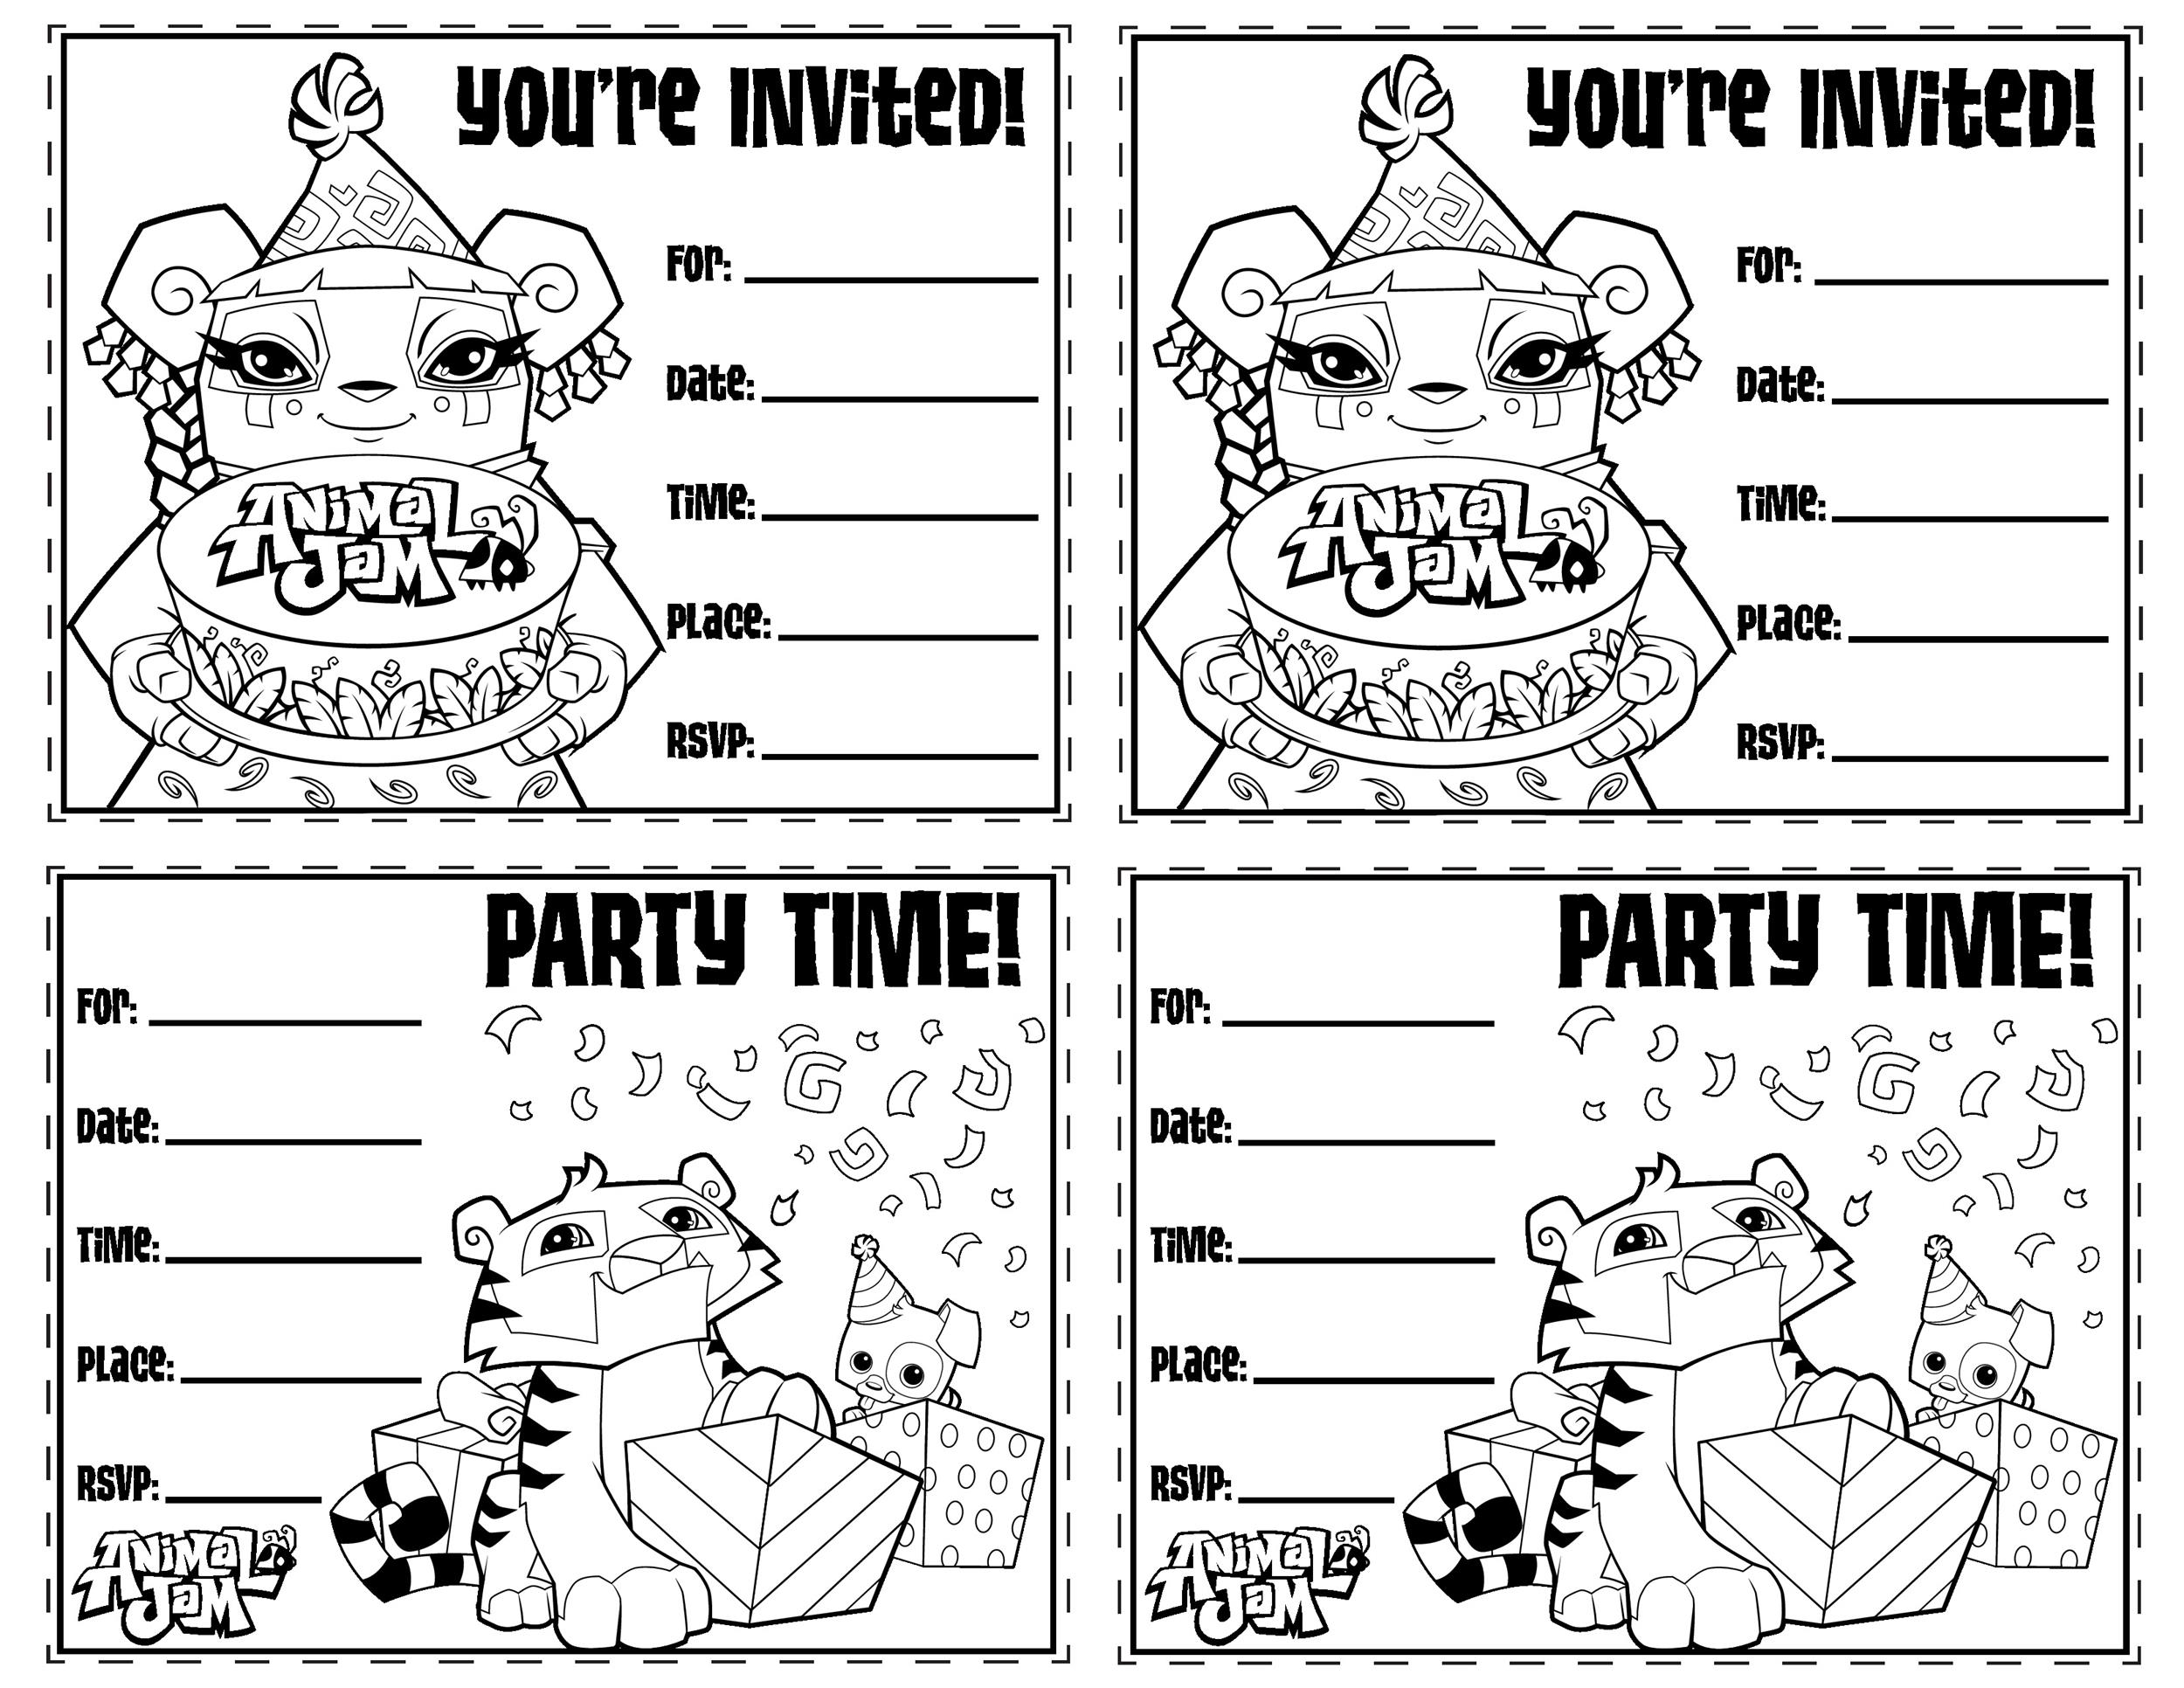 40 free birthday party invitation templates template lab free birthday invitation template 02 maxwellsz